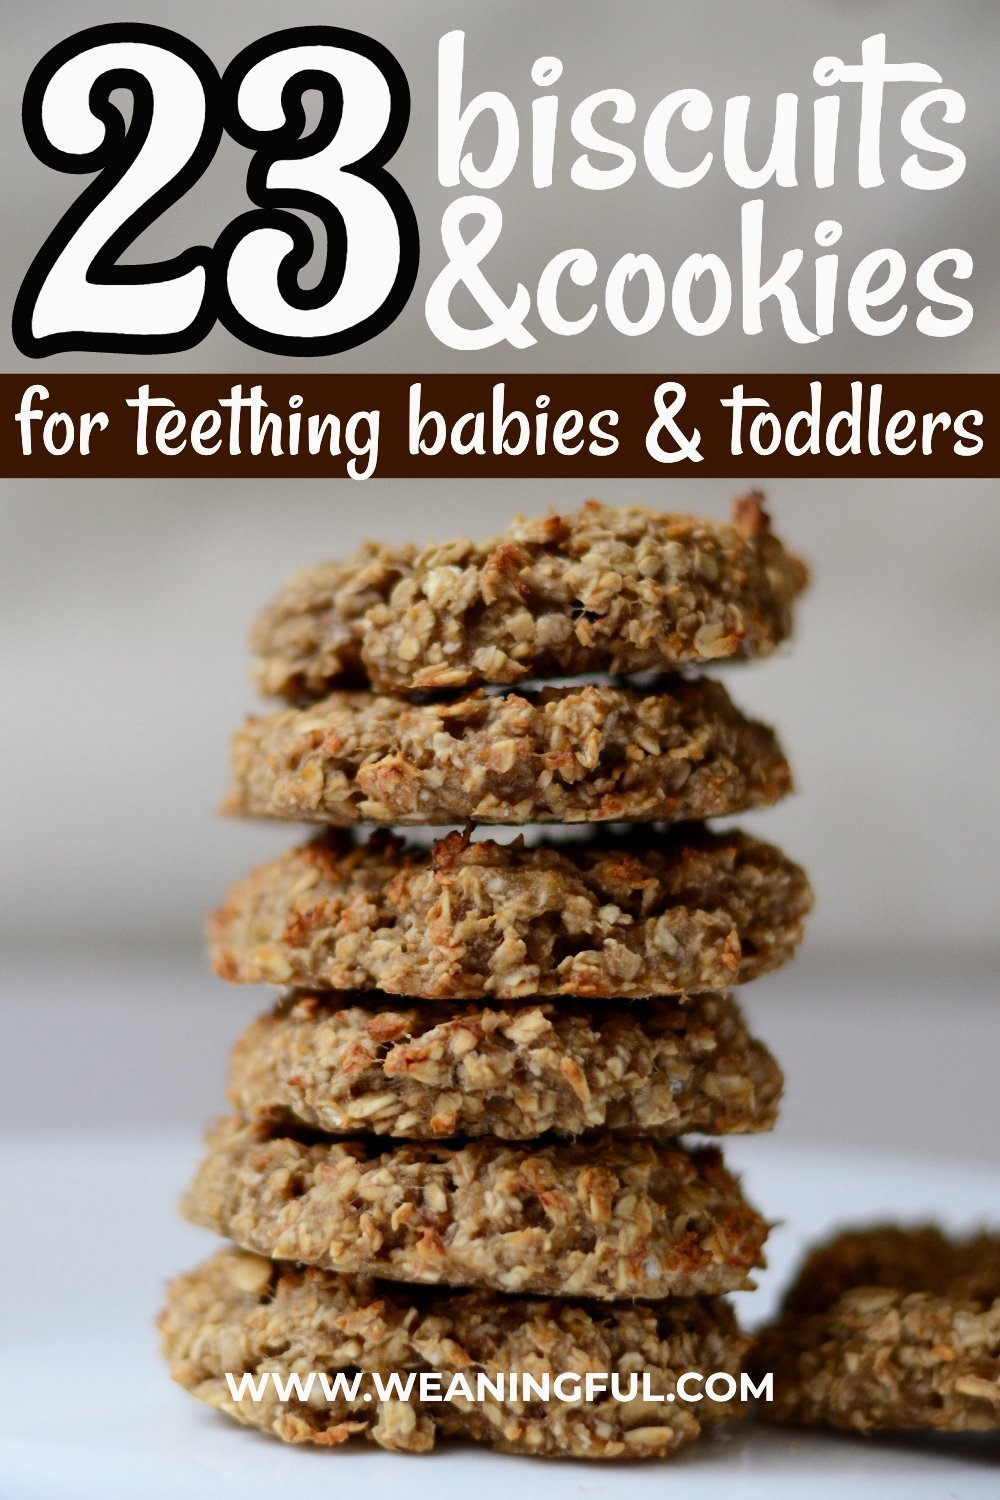 These easy homemade teething biscuits might be hard to chew, but they're a healthier option to the store bought ones and are made with common ingredients like banana, oats or other cereals and coconut oil. Your baby's or toddler's sore gums will thank you.